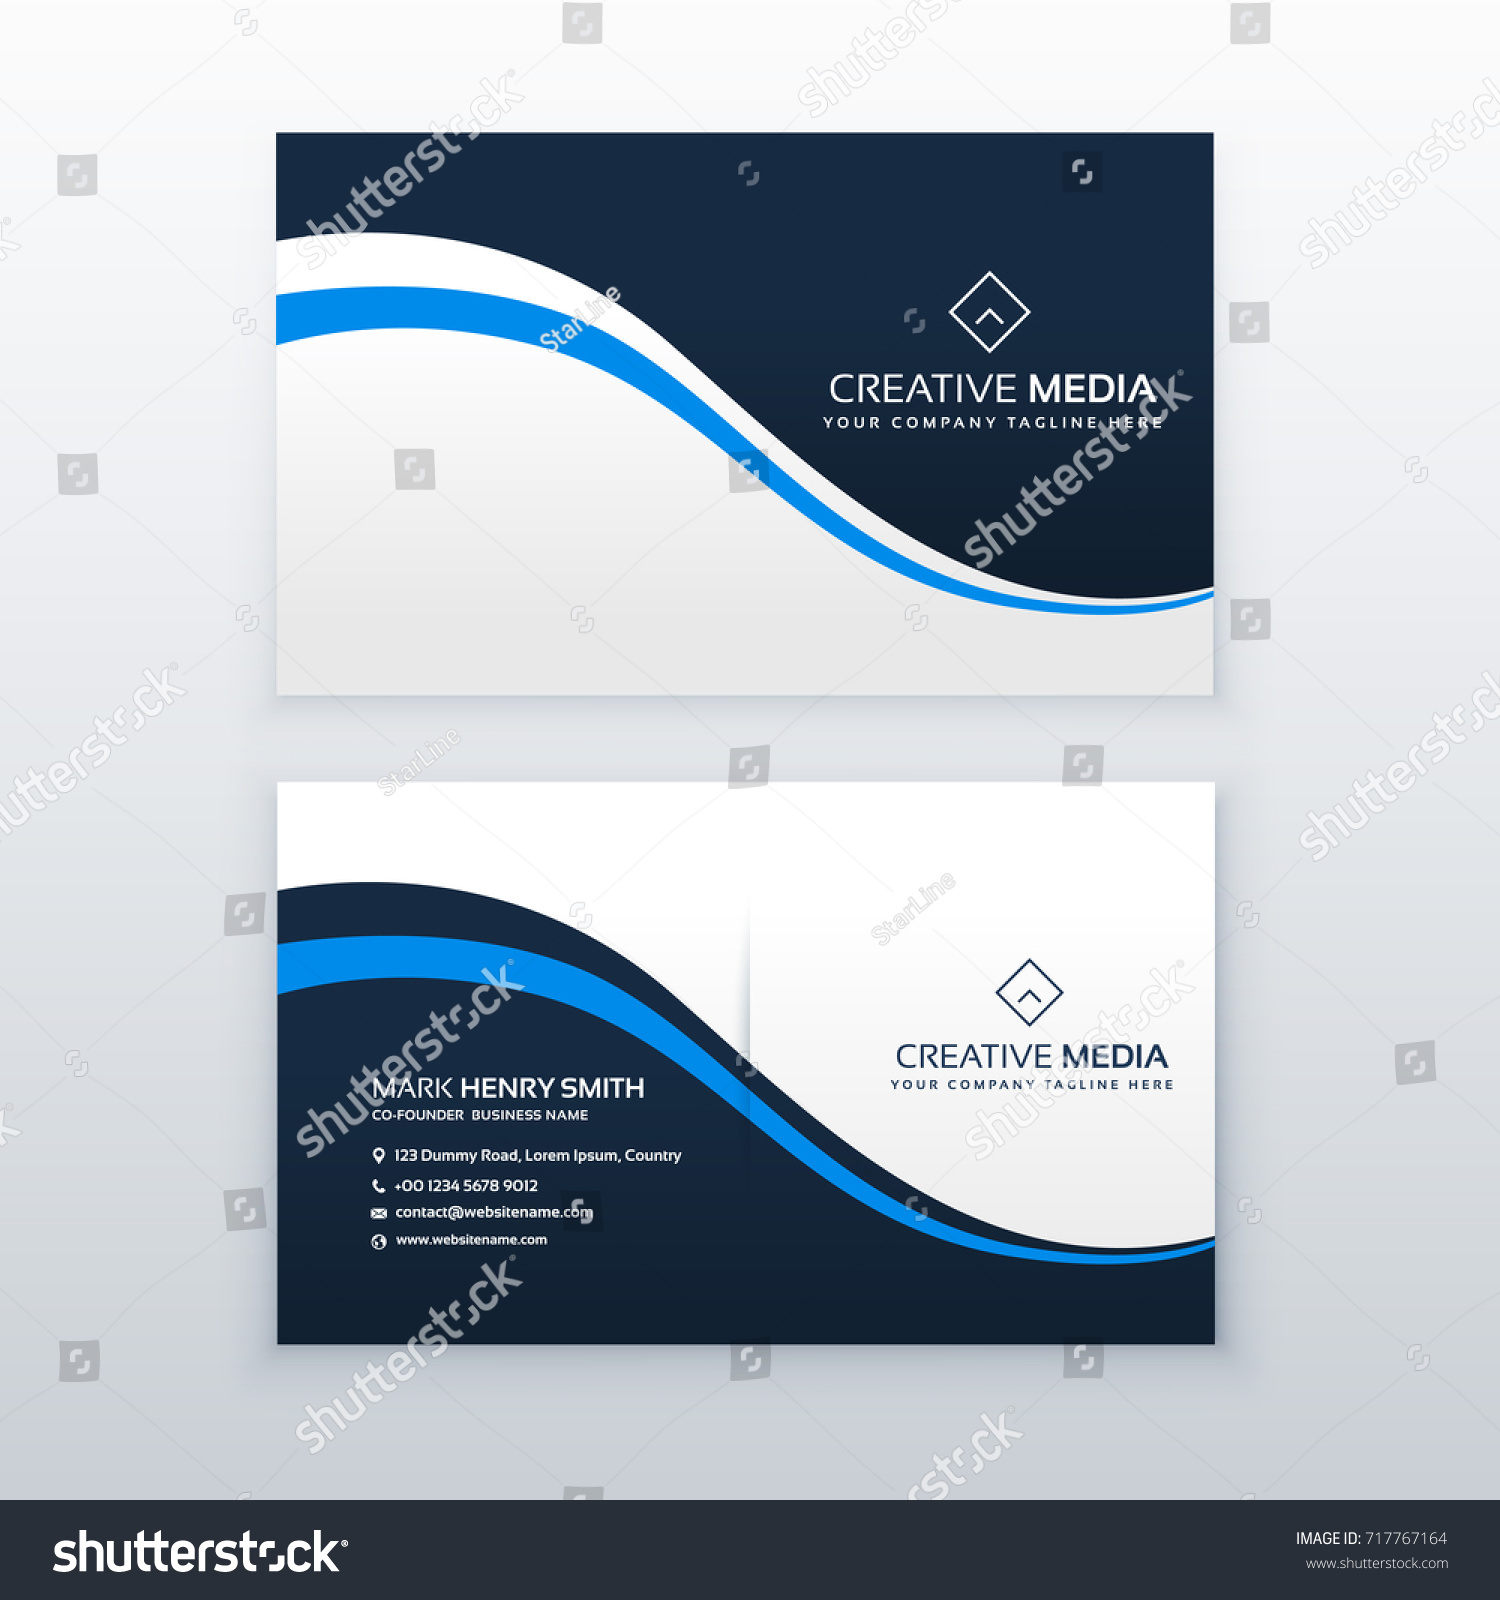 Professional Business Card Design Blue Wave Stock Vector 717767164 ...